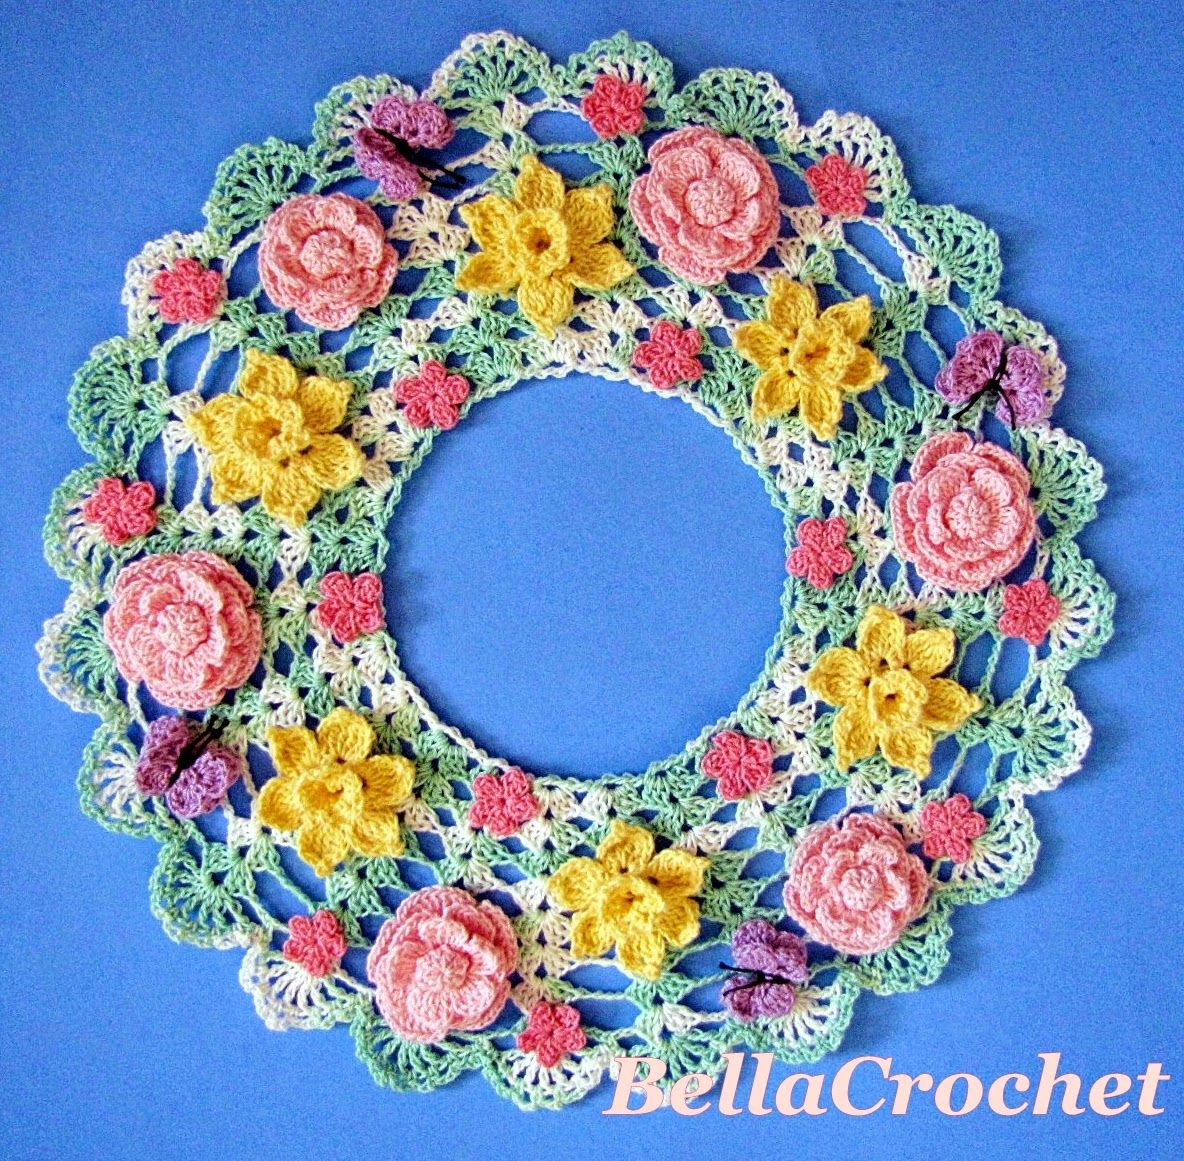 Bellacrochet springtime floral candle mat a free crochet pattern bellacrochet springtime floral candle mat a free crochet pattern for you bankloansurffo Image collections